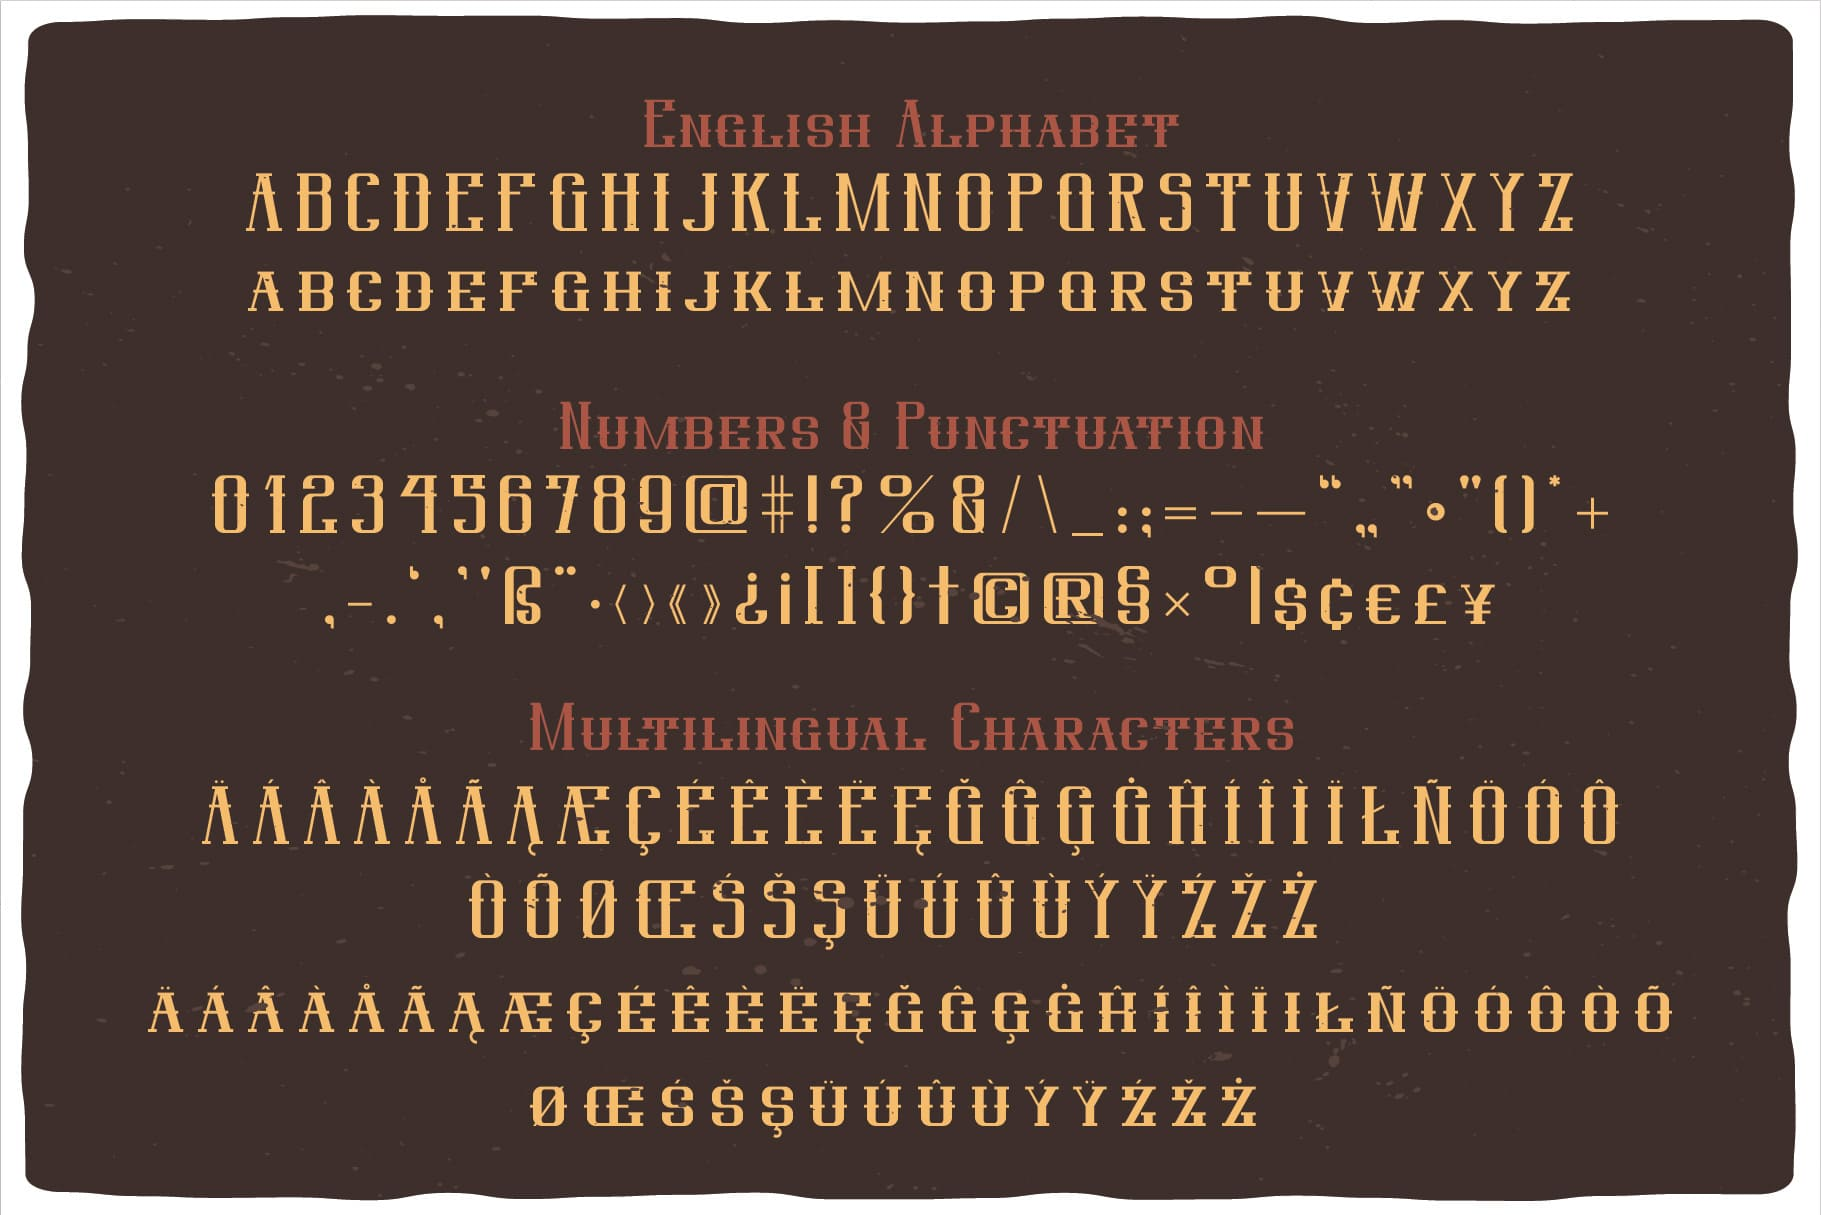 General view of the font on a brown background. Western Whiskey Font.